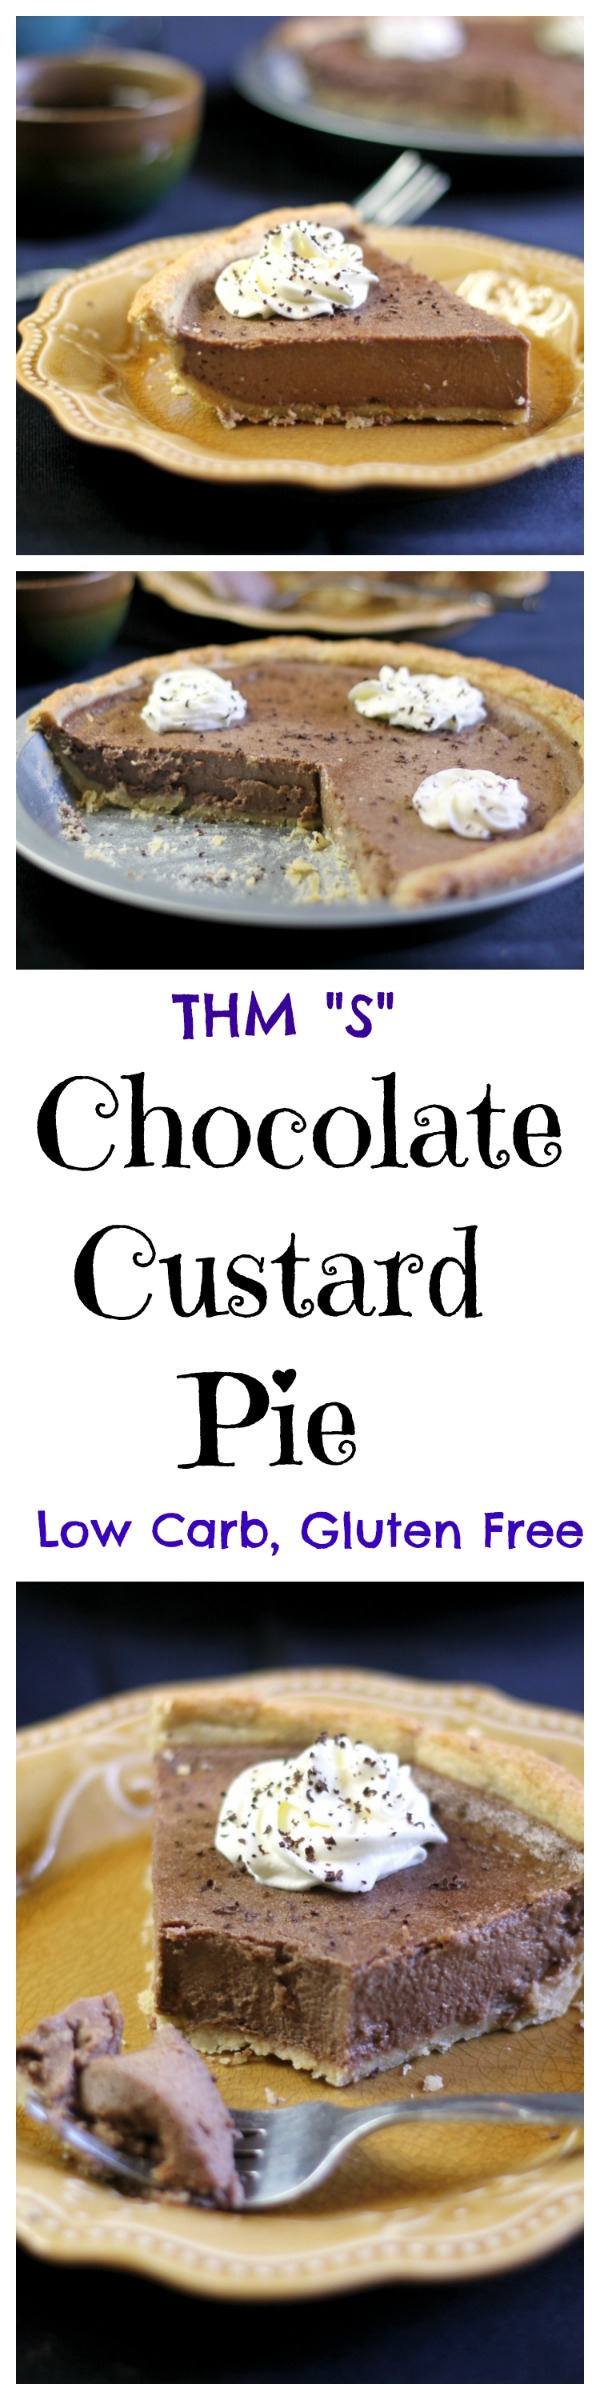 "Low Carb and Gluten free this Chocolate Custard pie is rich and creamy. The perfect dessert. THM ""S"""